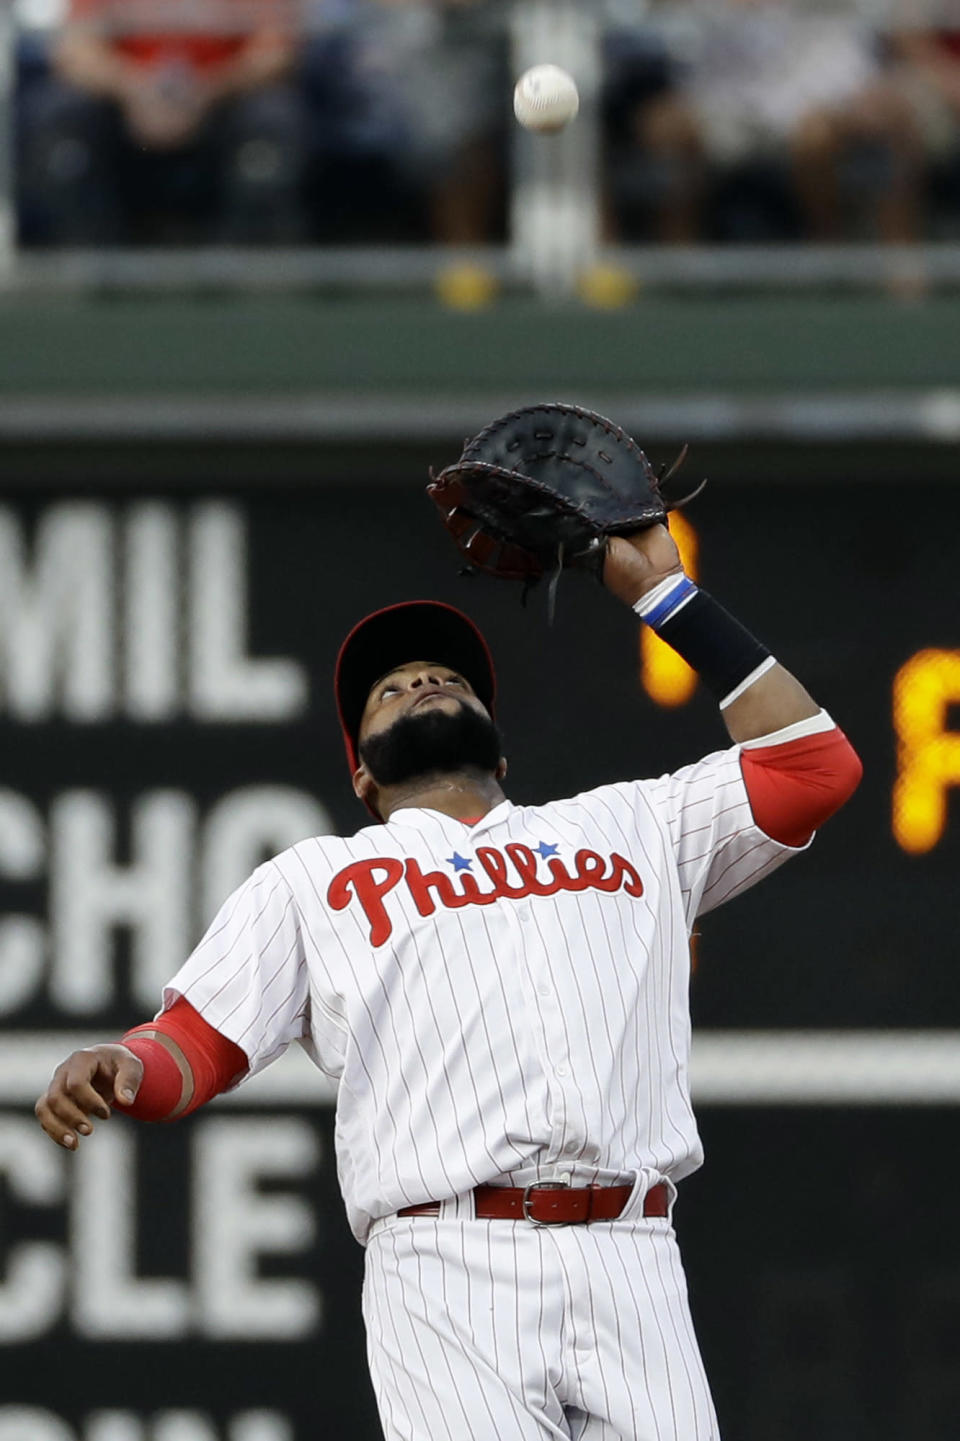 Philadelphia Phillies first baseman Carlos Santana catches a fly ball by Boston Red Sox's Mookie Betts during the first inning of a baseball game, Tuesday, Aug. 14, 2018, in Philadelphia. (AP Photo/Matt Slocum)